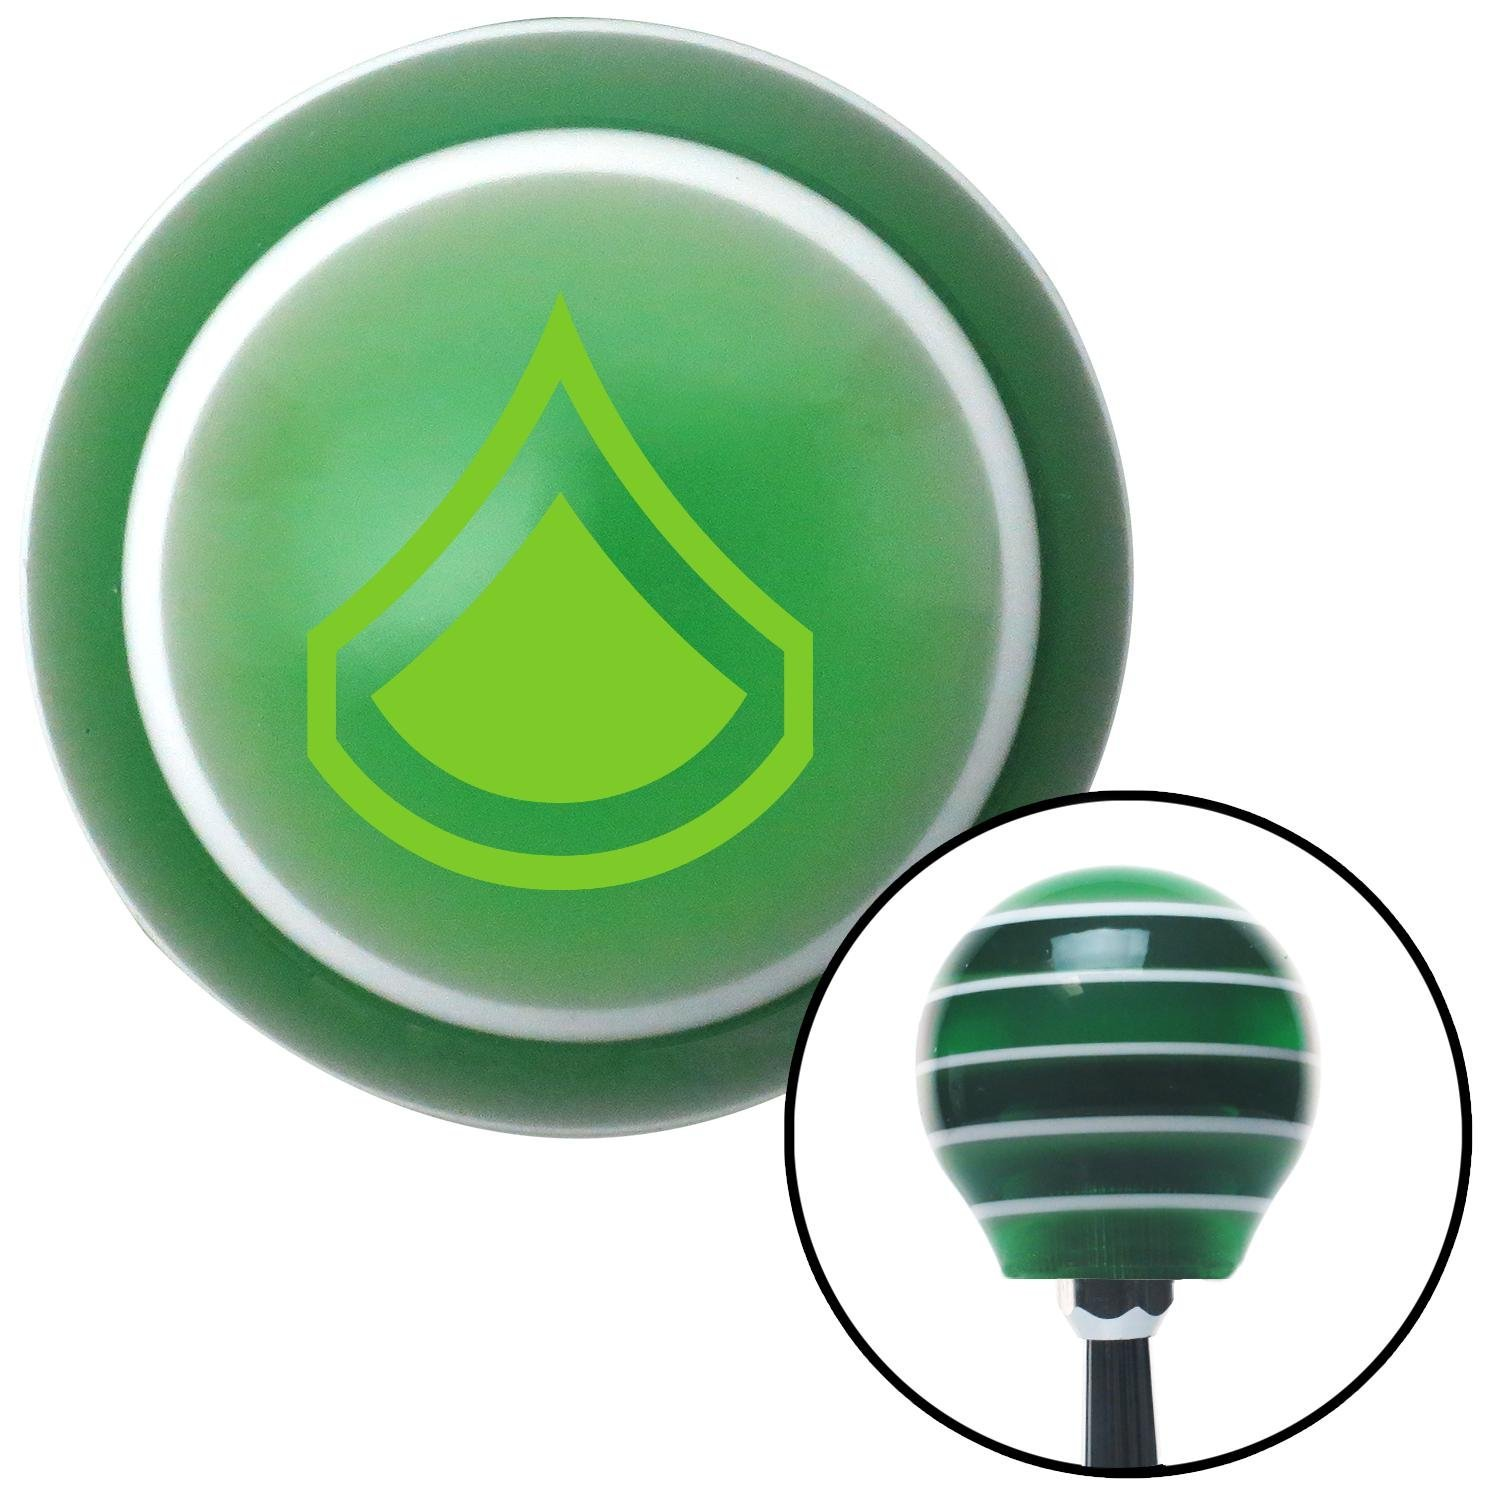 American Shifter 124779 Green Stripe Shift Knob with M16 x 1.5 Insert Green Private First Class